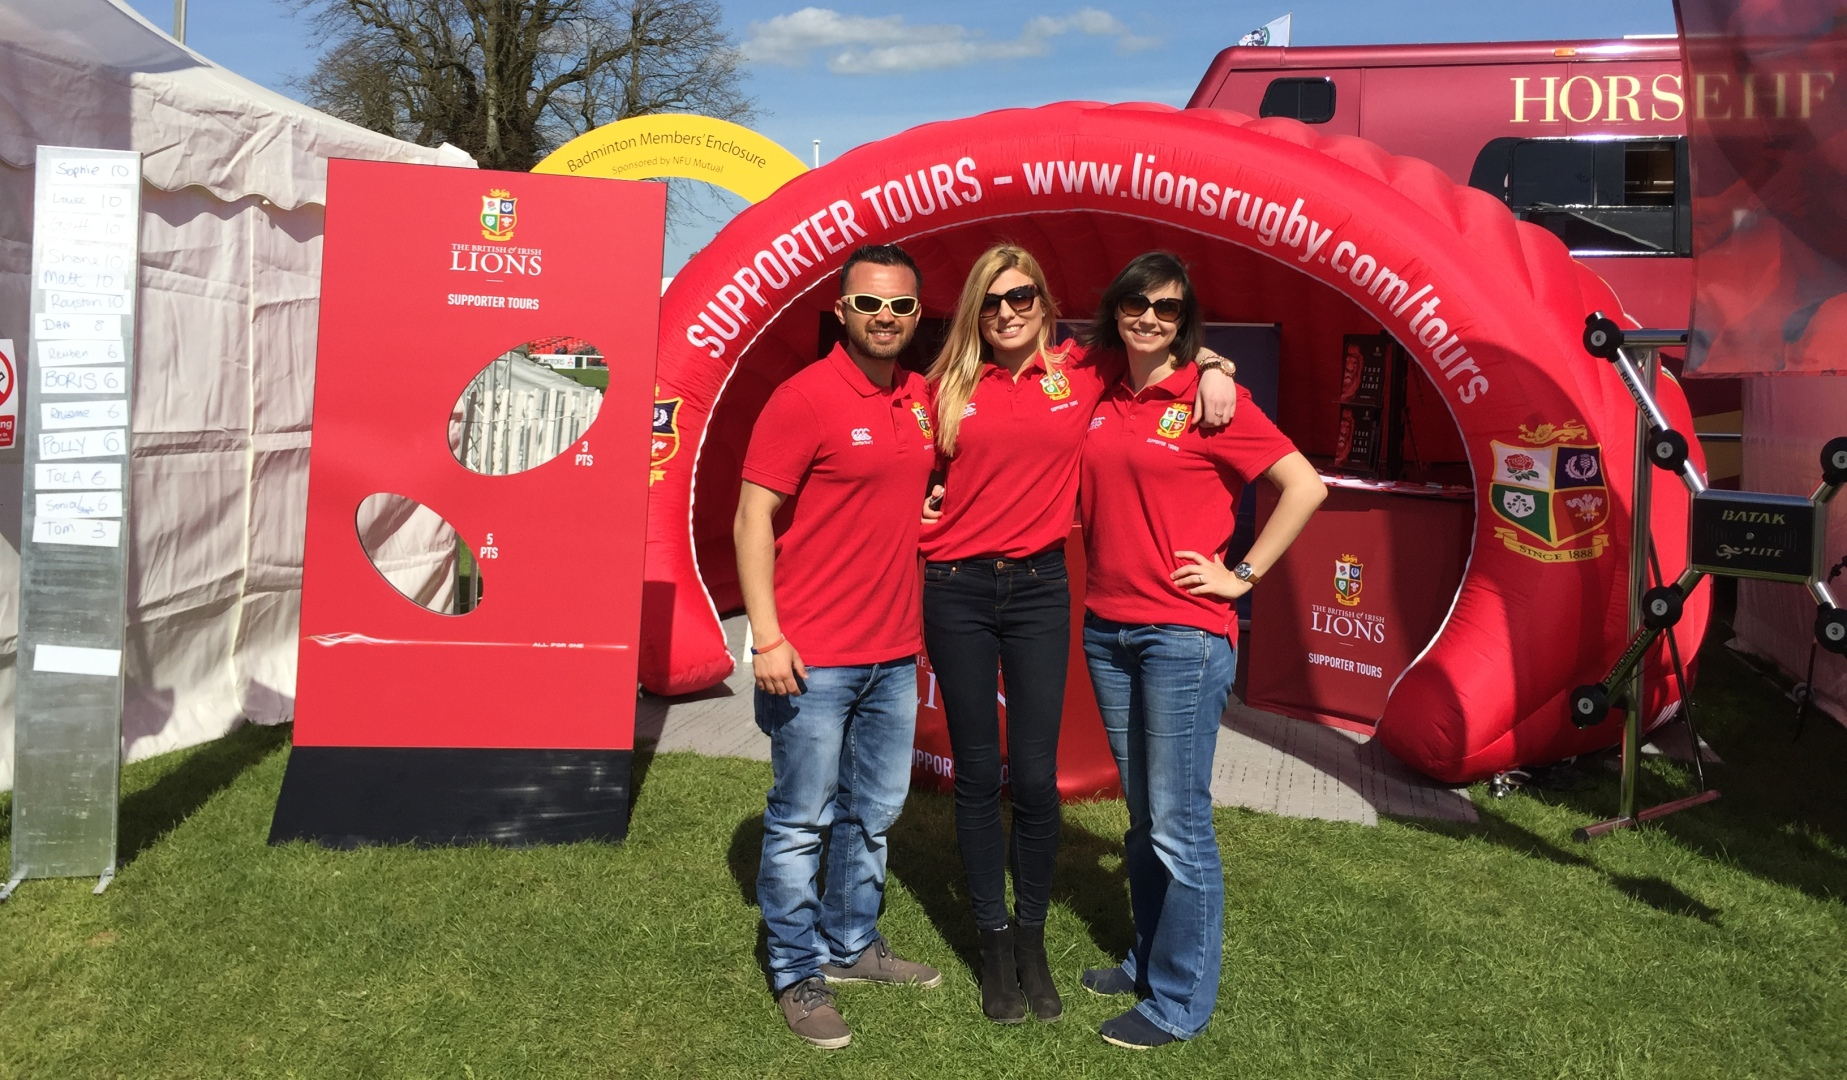 Lions Outdoor Experience At Badminton Horse Trials